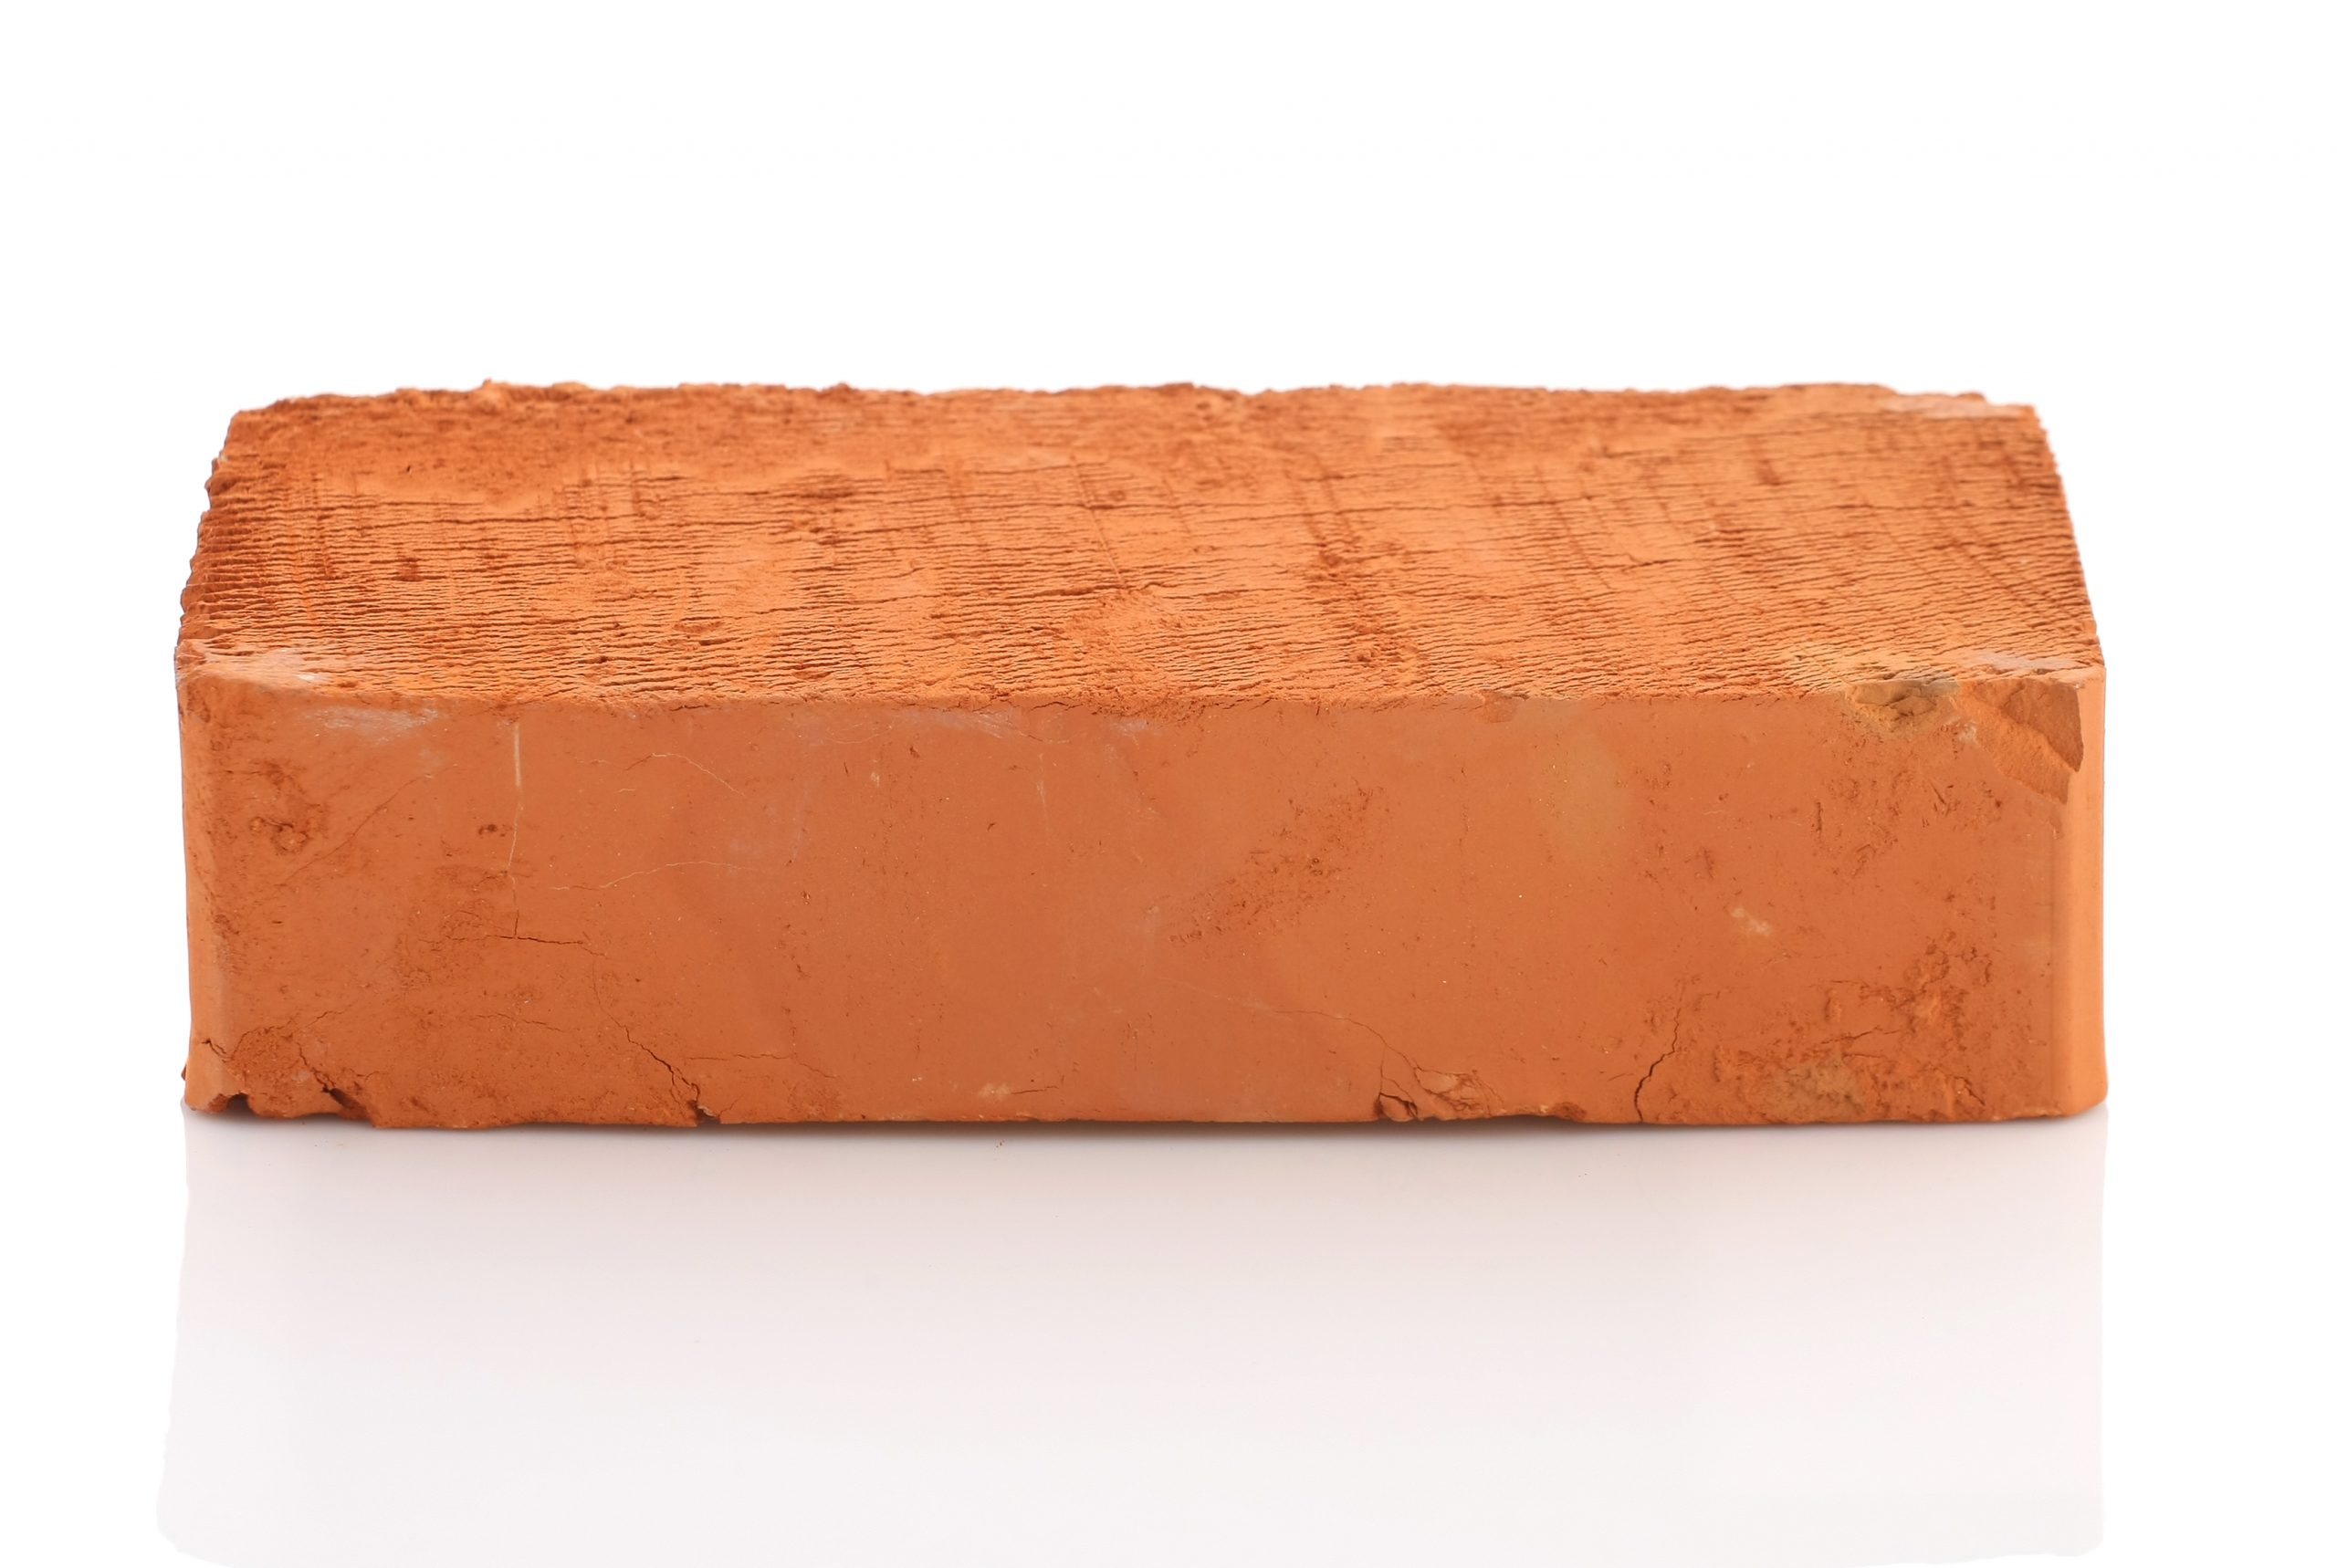 Single red brick isolated